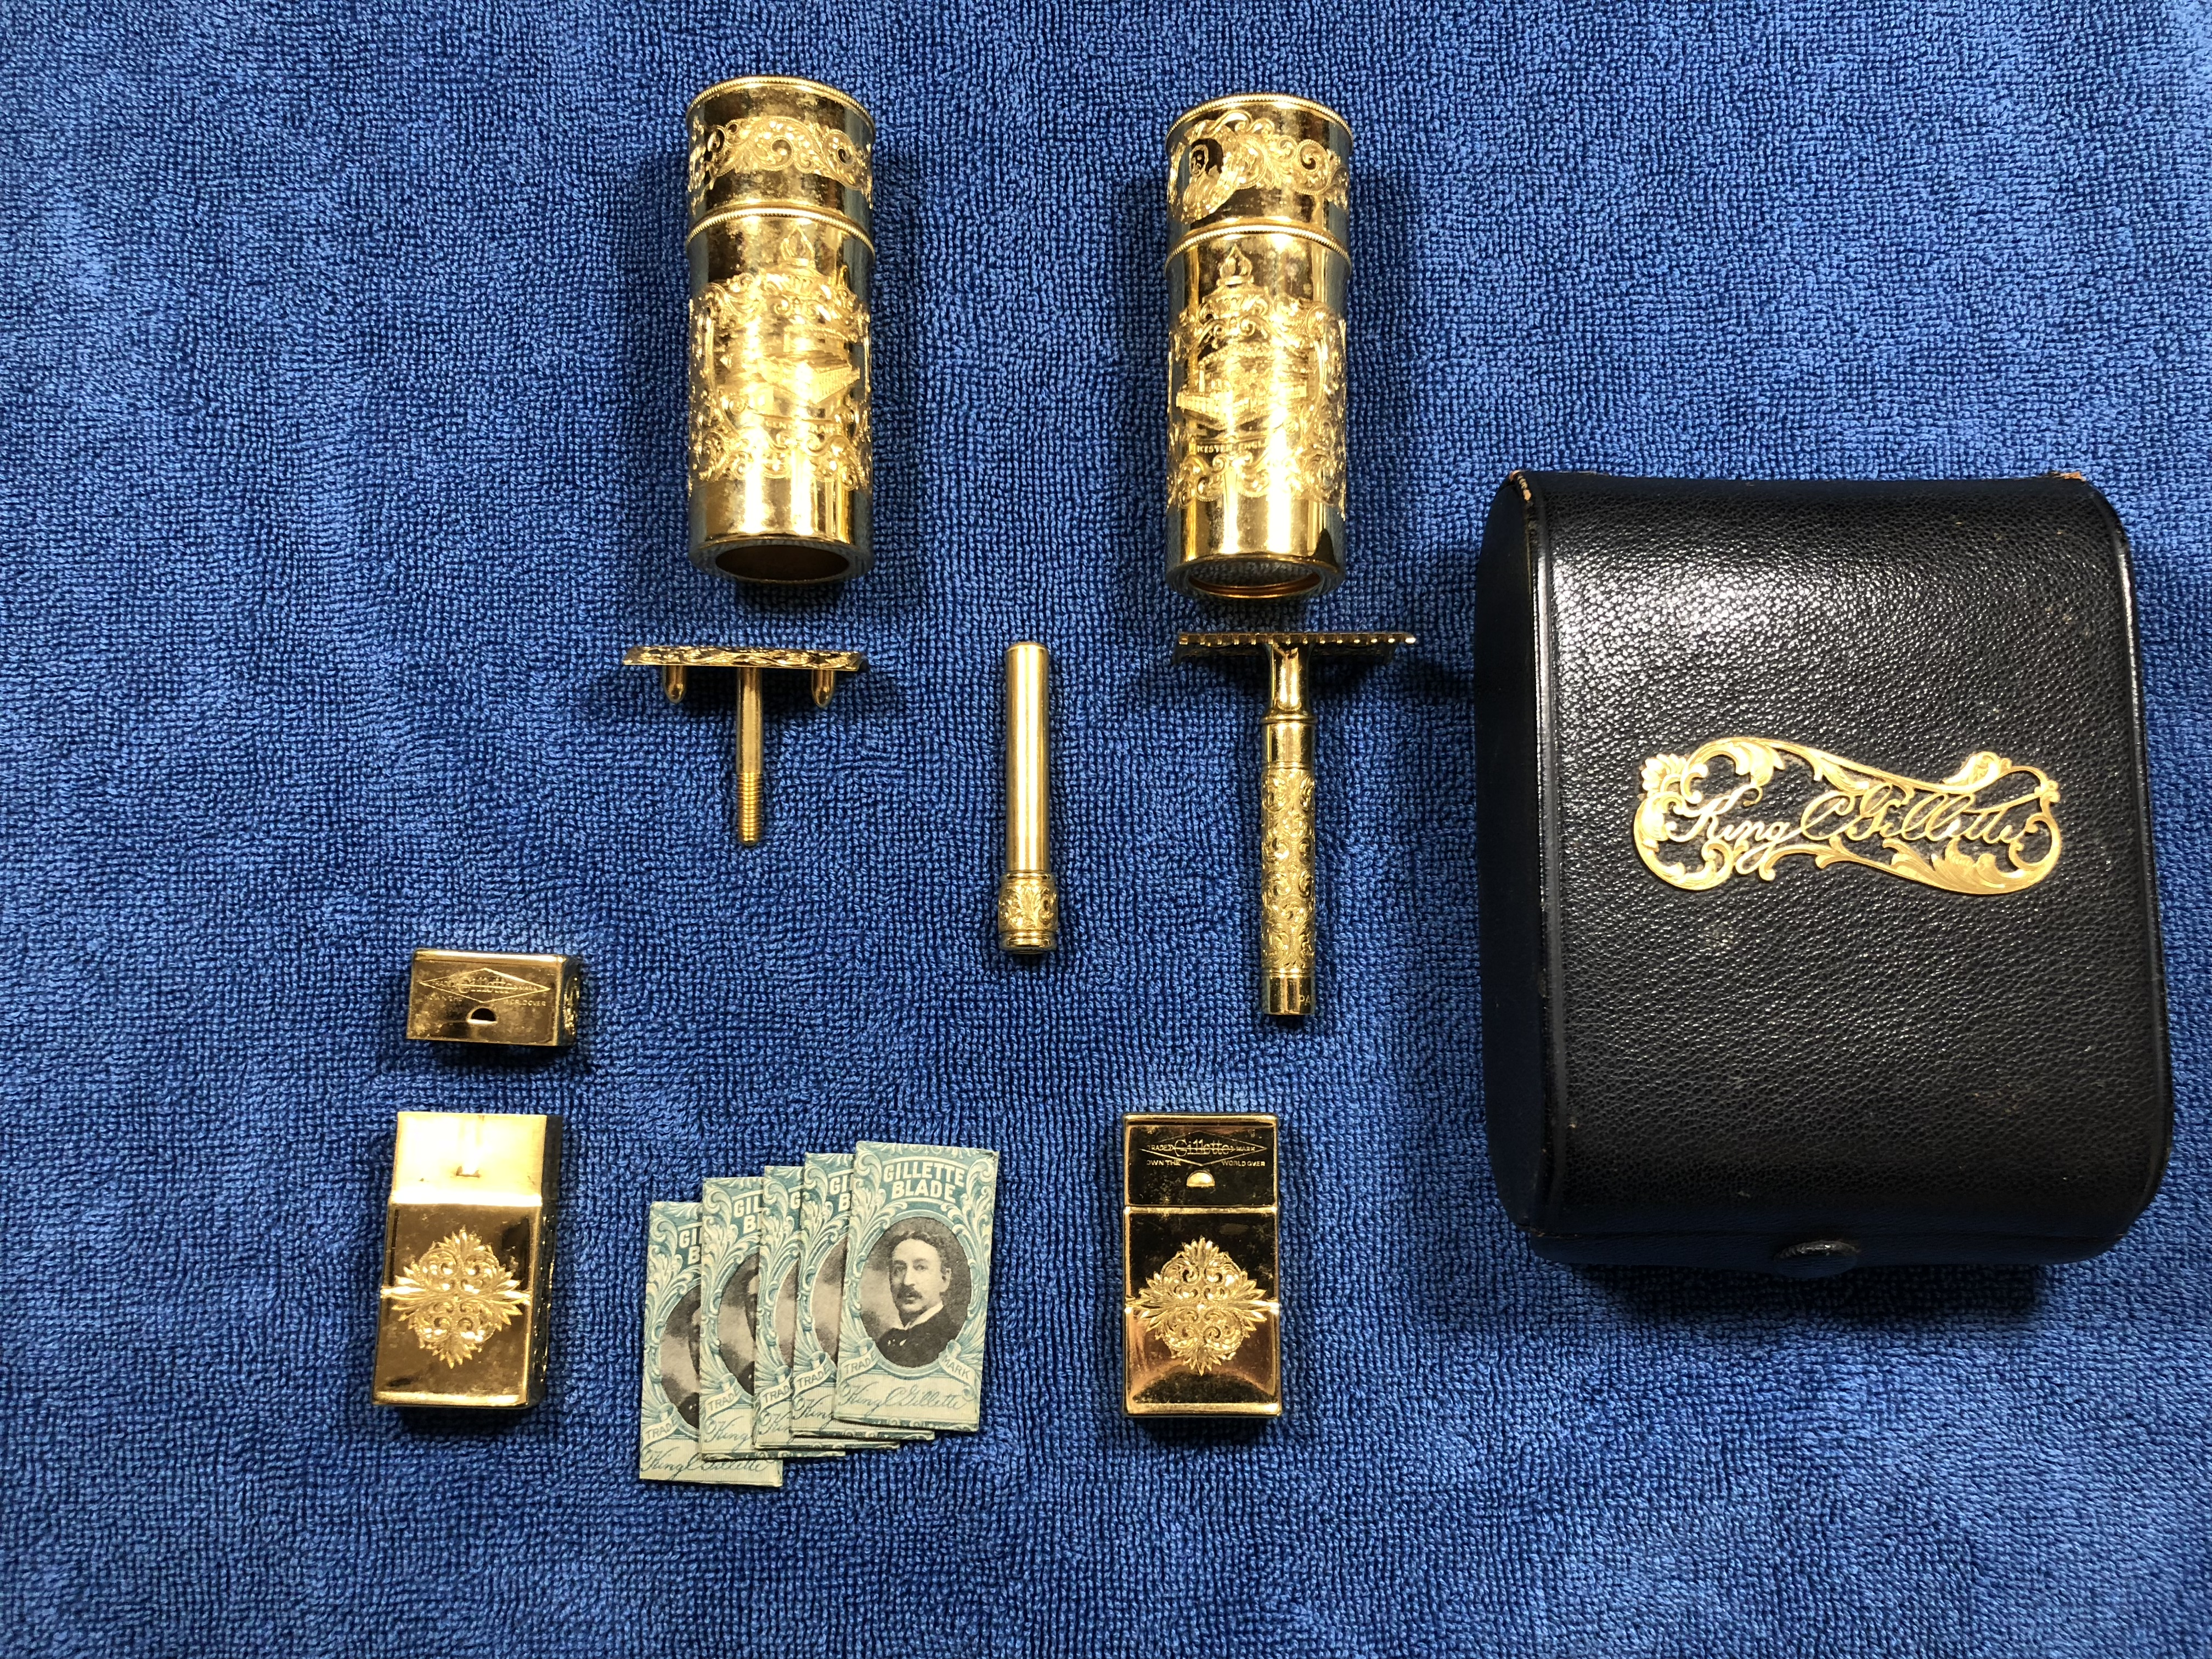 King Camp Gillette's de Luxe Combination Set